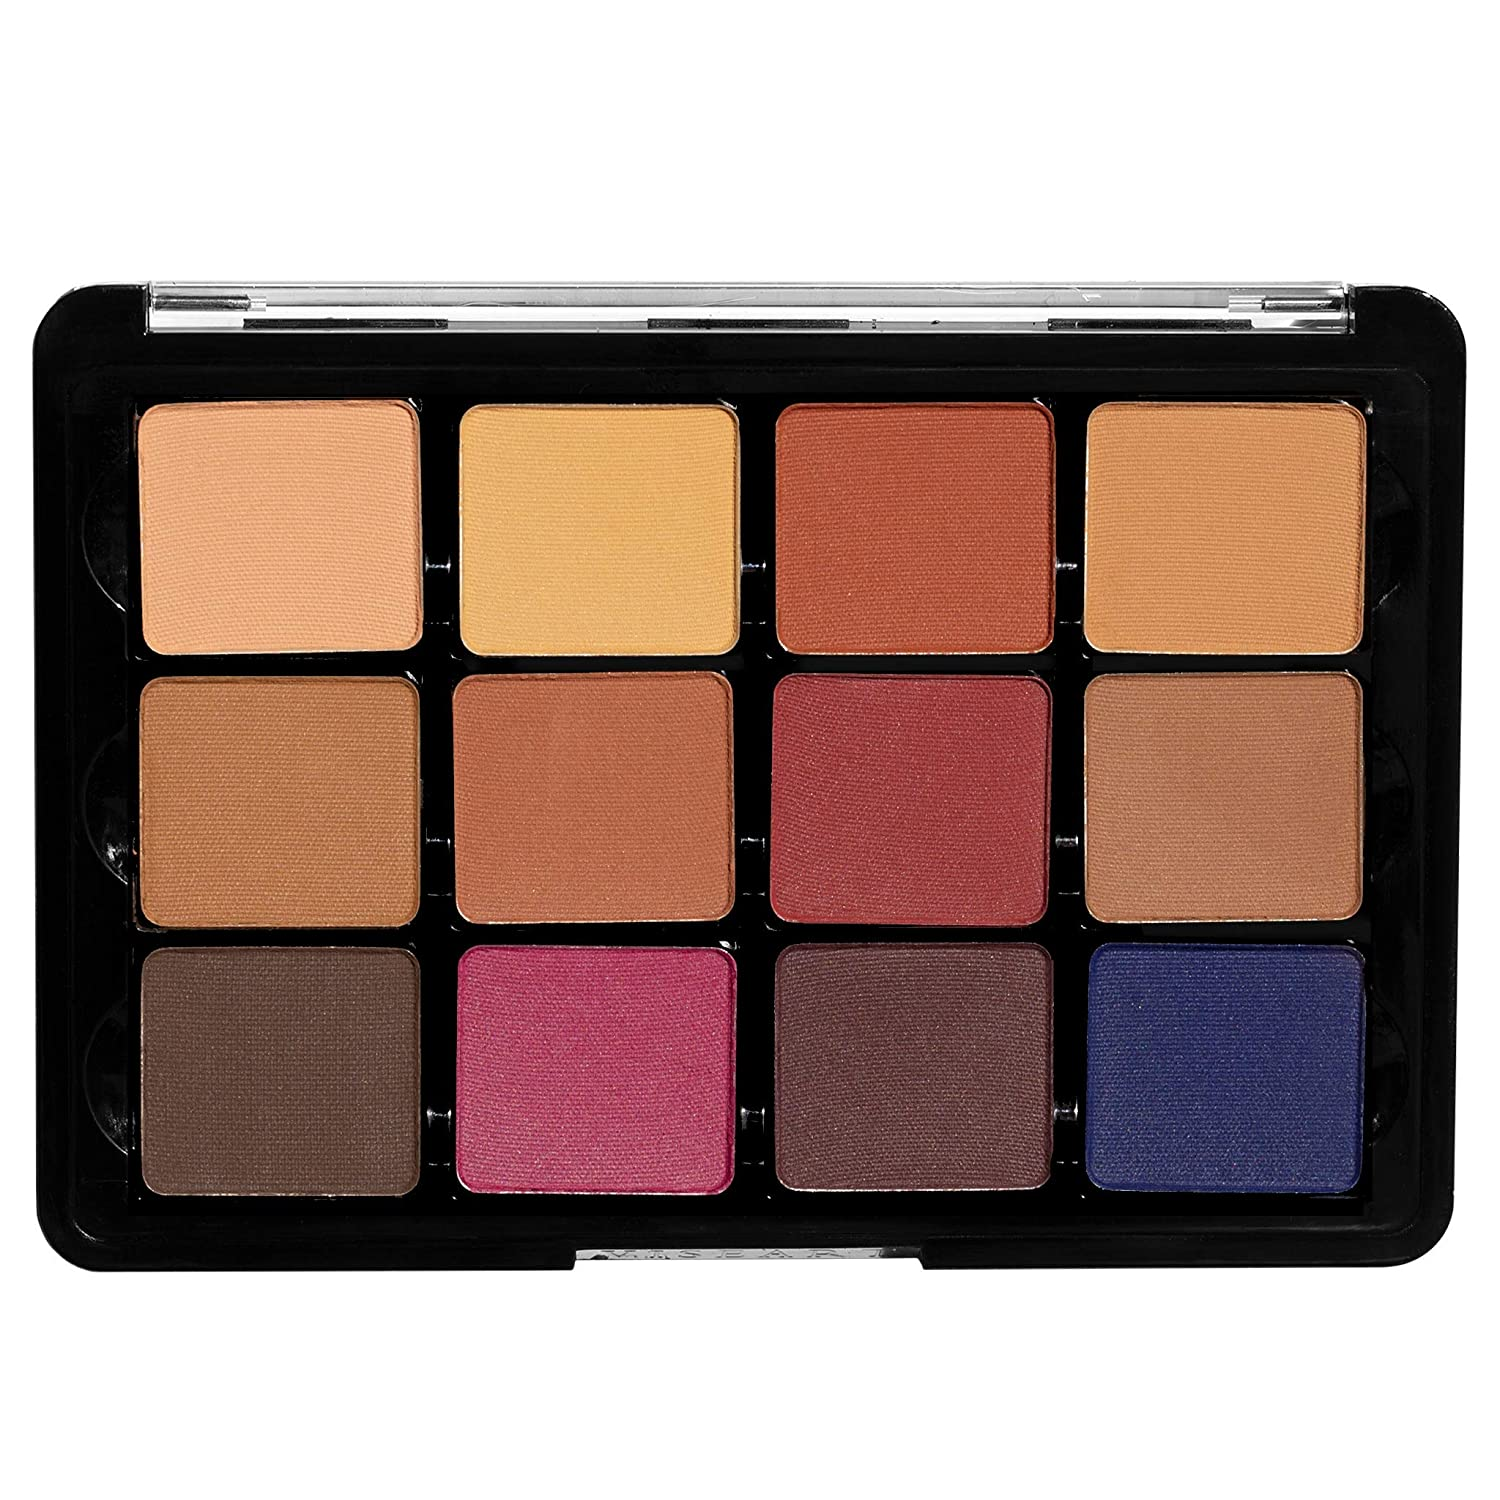 Viseart Selling and selling Eye Shadow Palette 14 2: Neutral Max 41% OFF Milieu Mattes